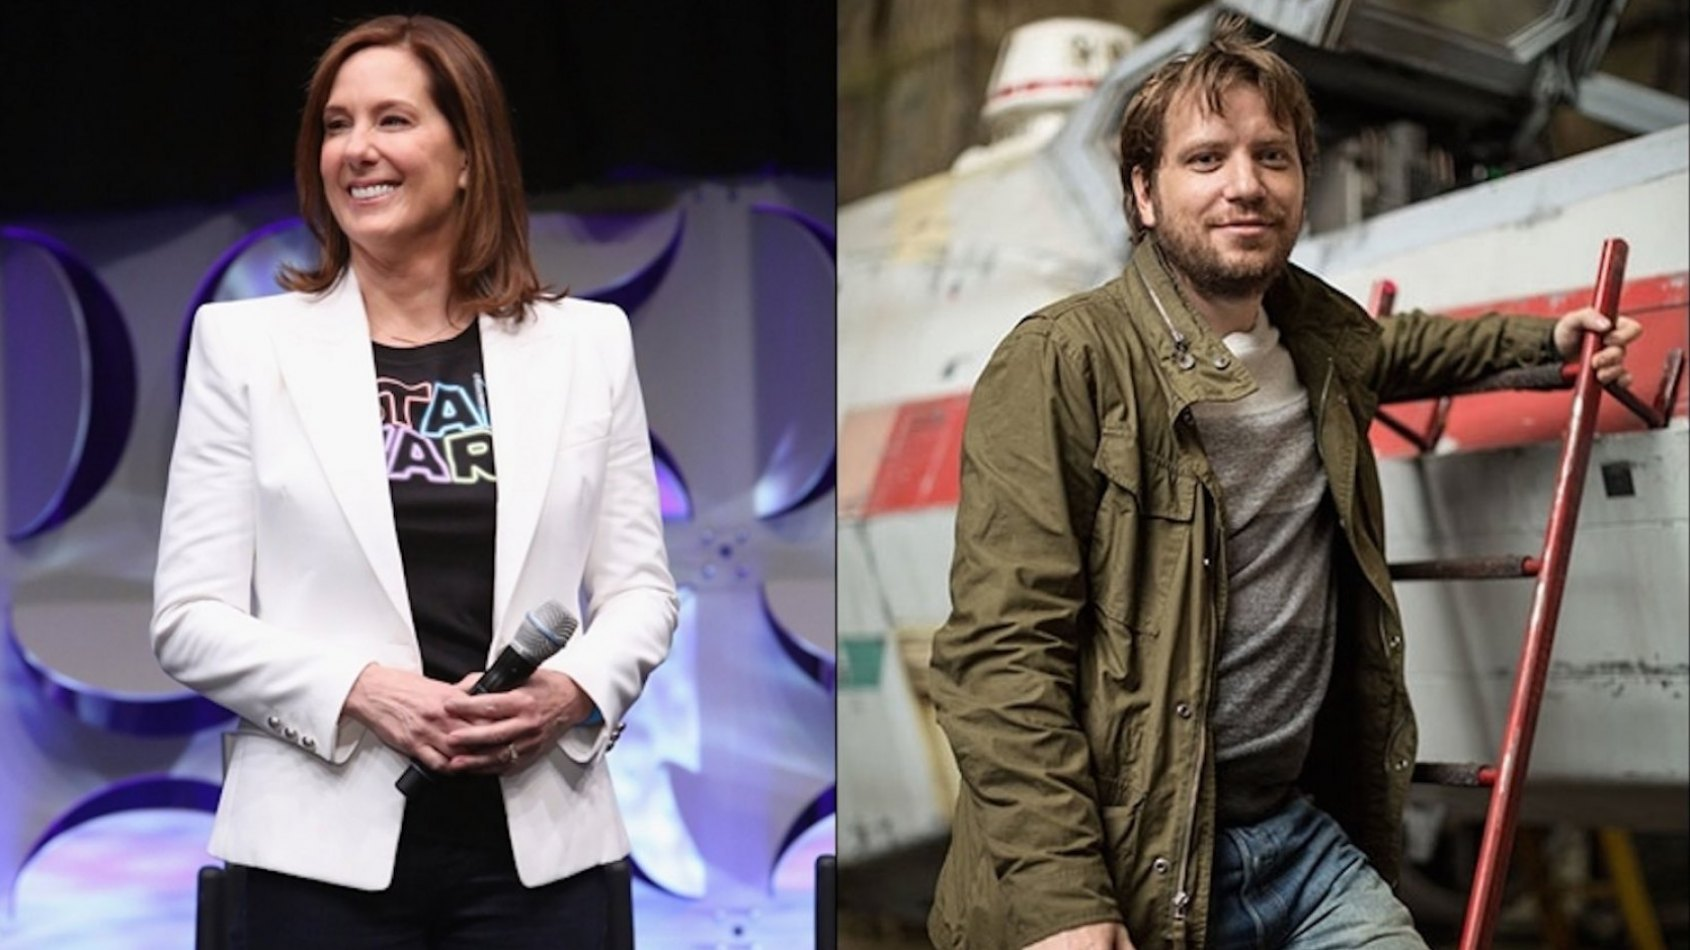 Gareth Edwards et Kathleen Kennedy parlent des reshoots de Rogue One